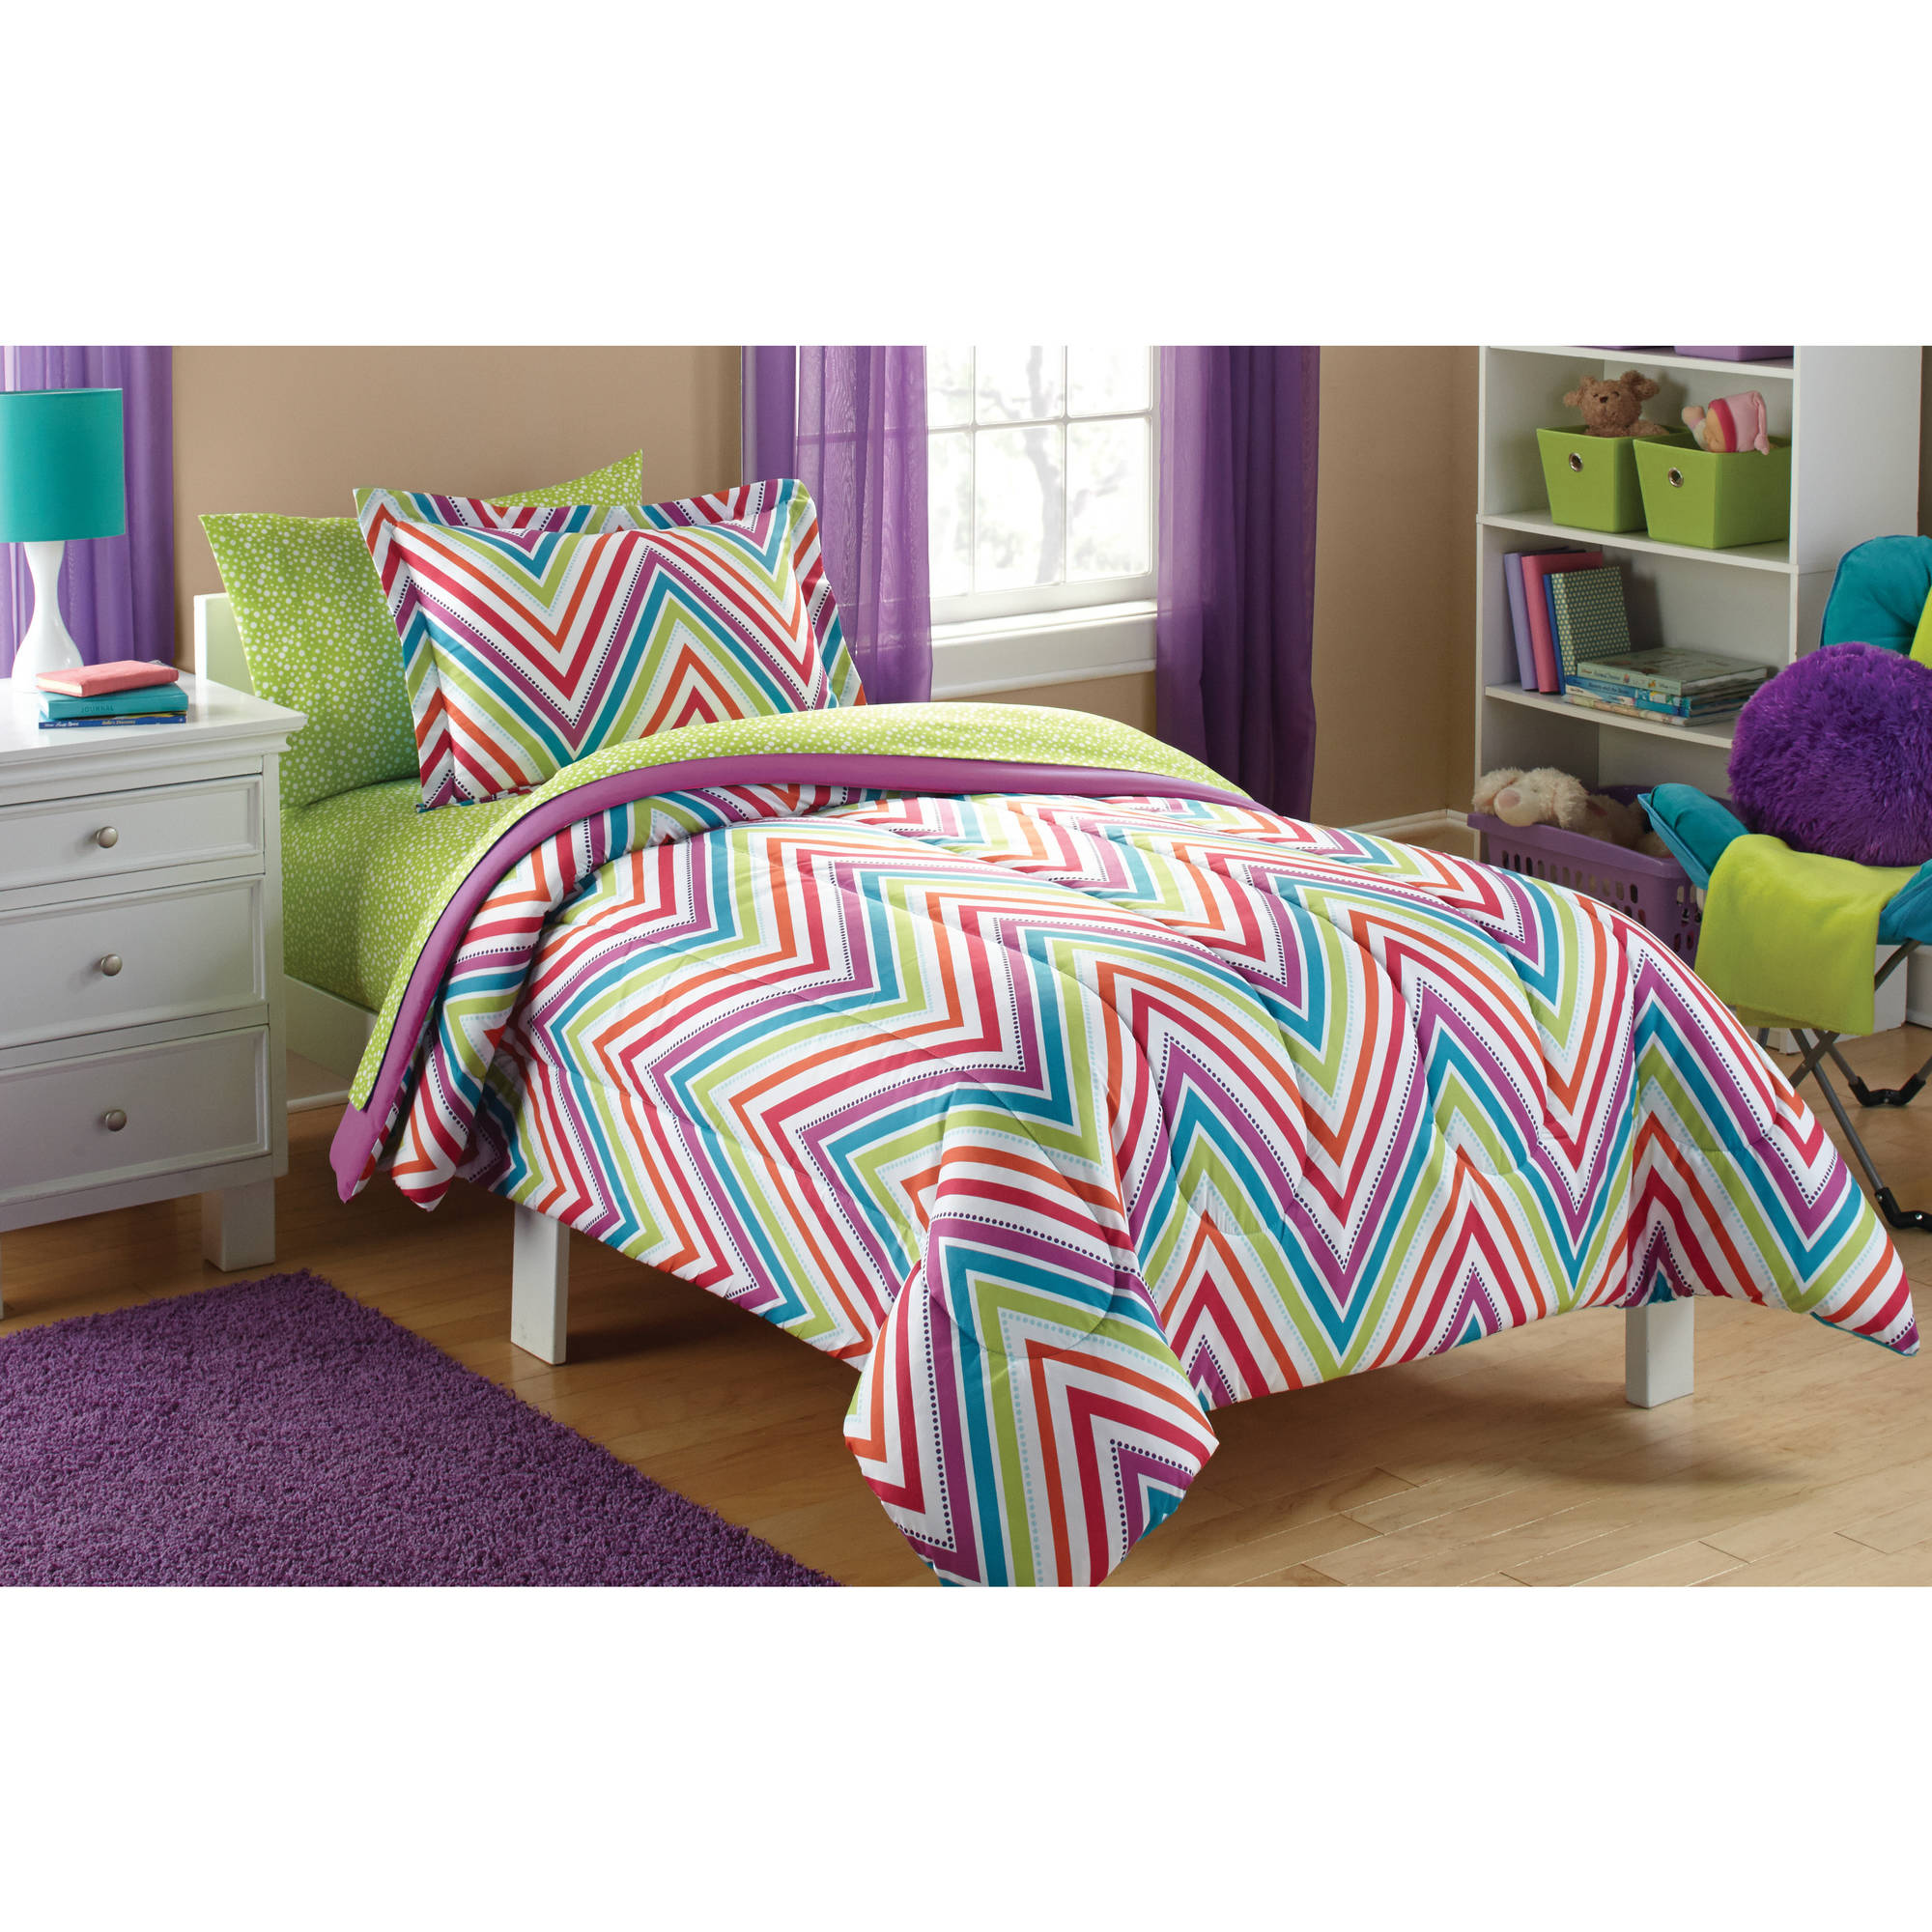 Mainstays Kids' Chevron Coordinated Bed in a Bag